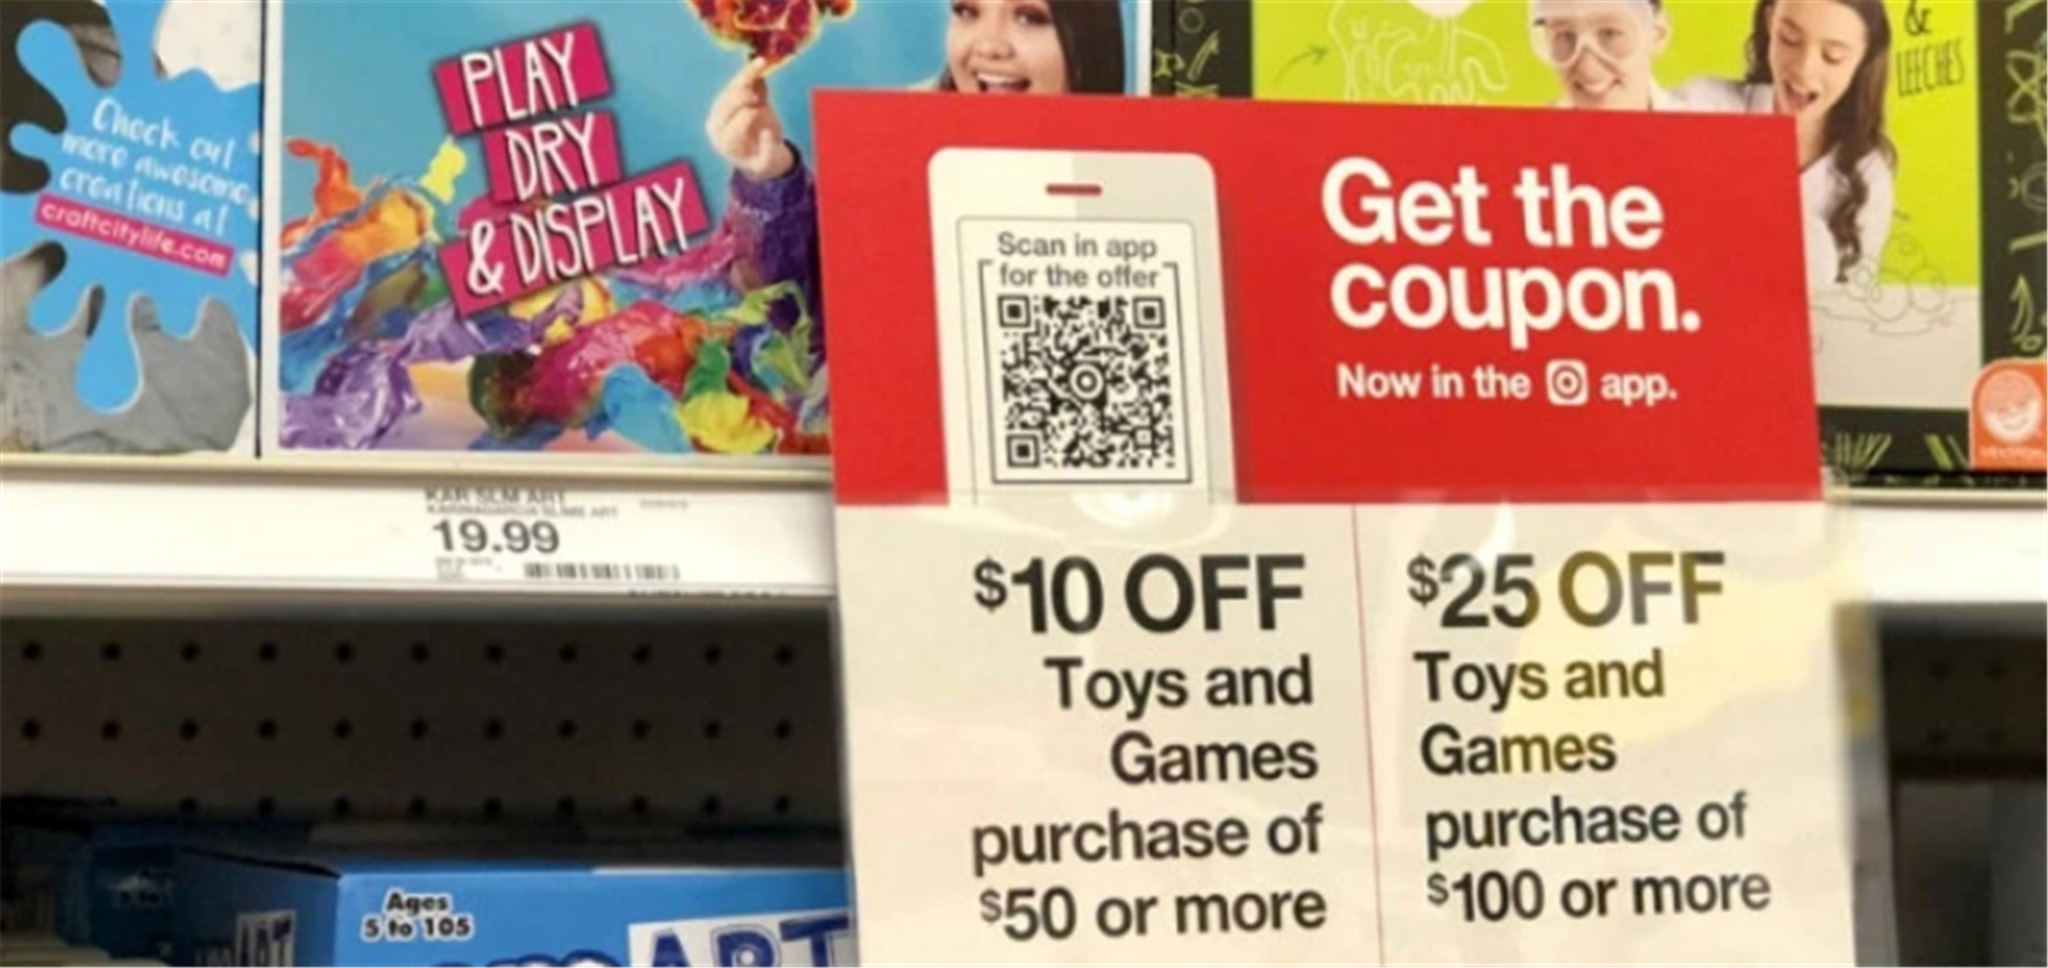 Target – Up to $25 Off Toys & Games With Coupon